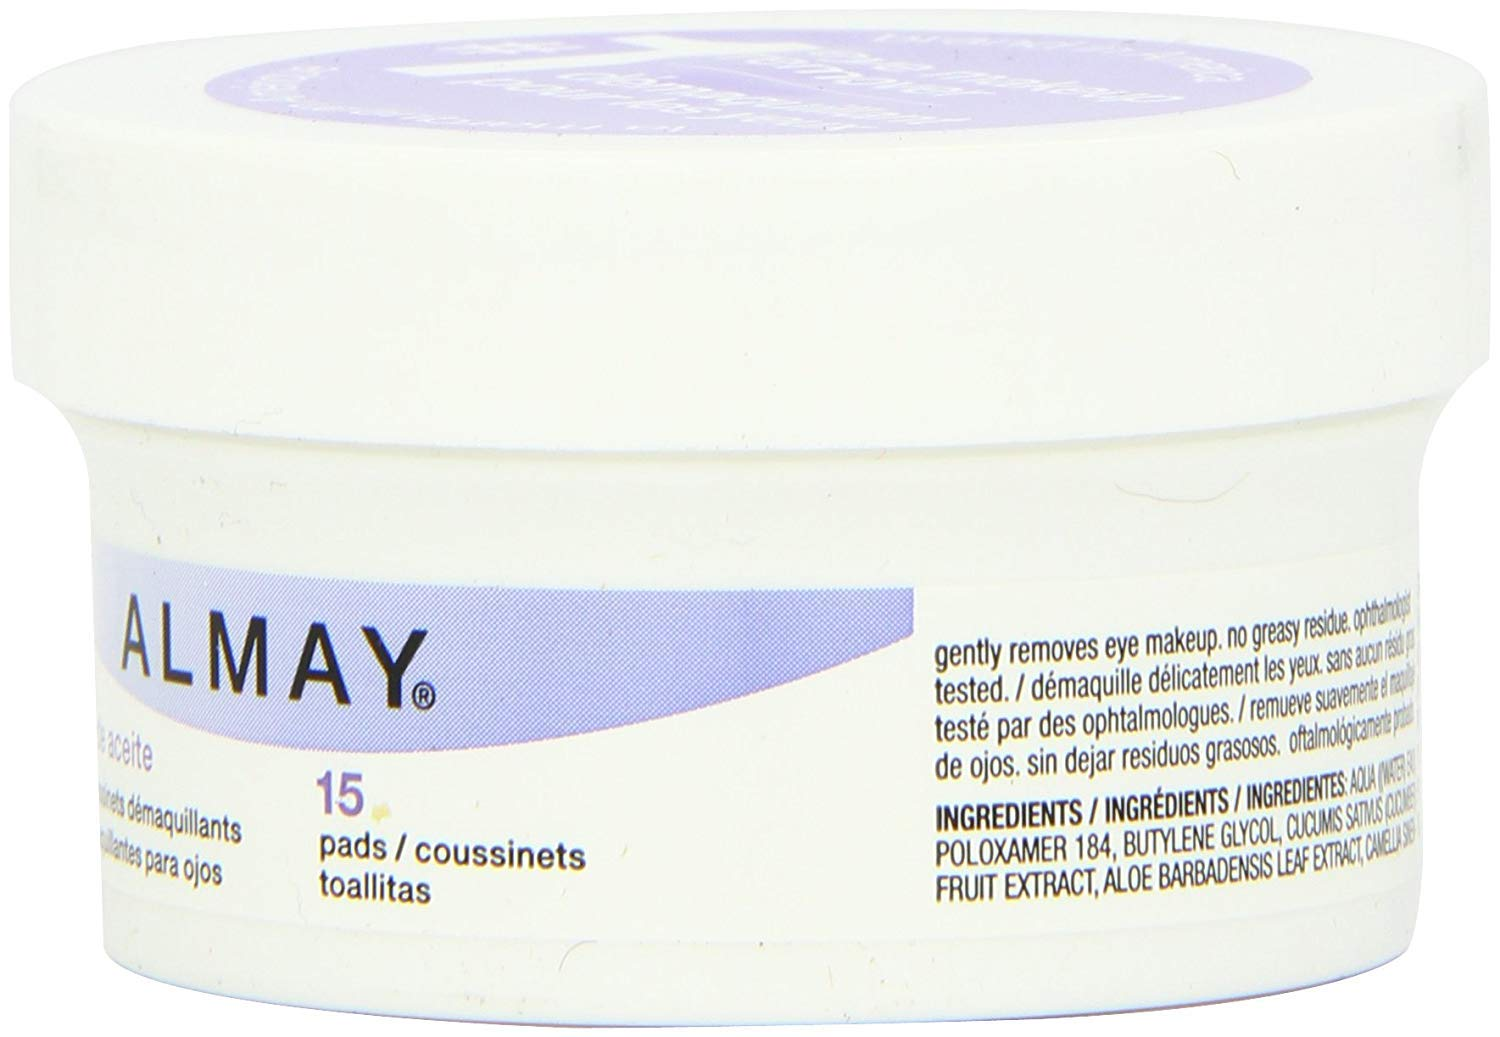 Amazon.com: Almay Oil Free Eye Makeup Remover Pads, 15 Count in 1 Box (Pack of 4): Office Products